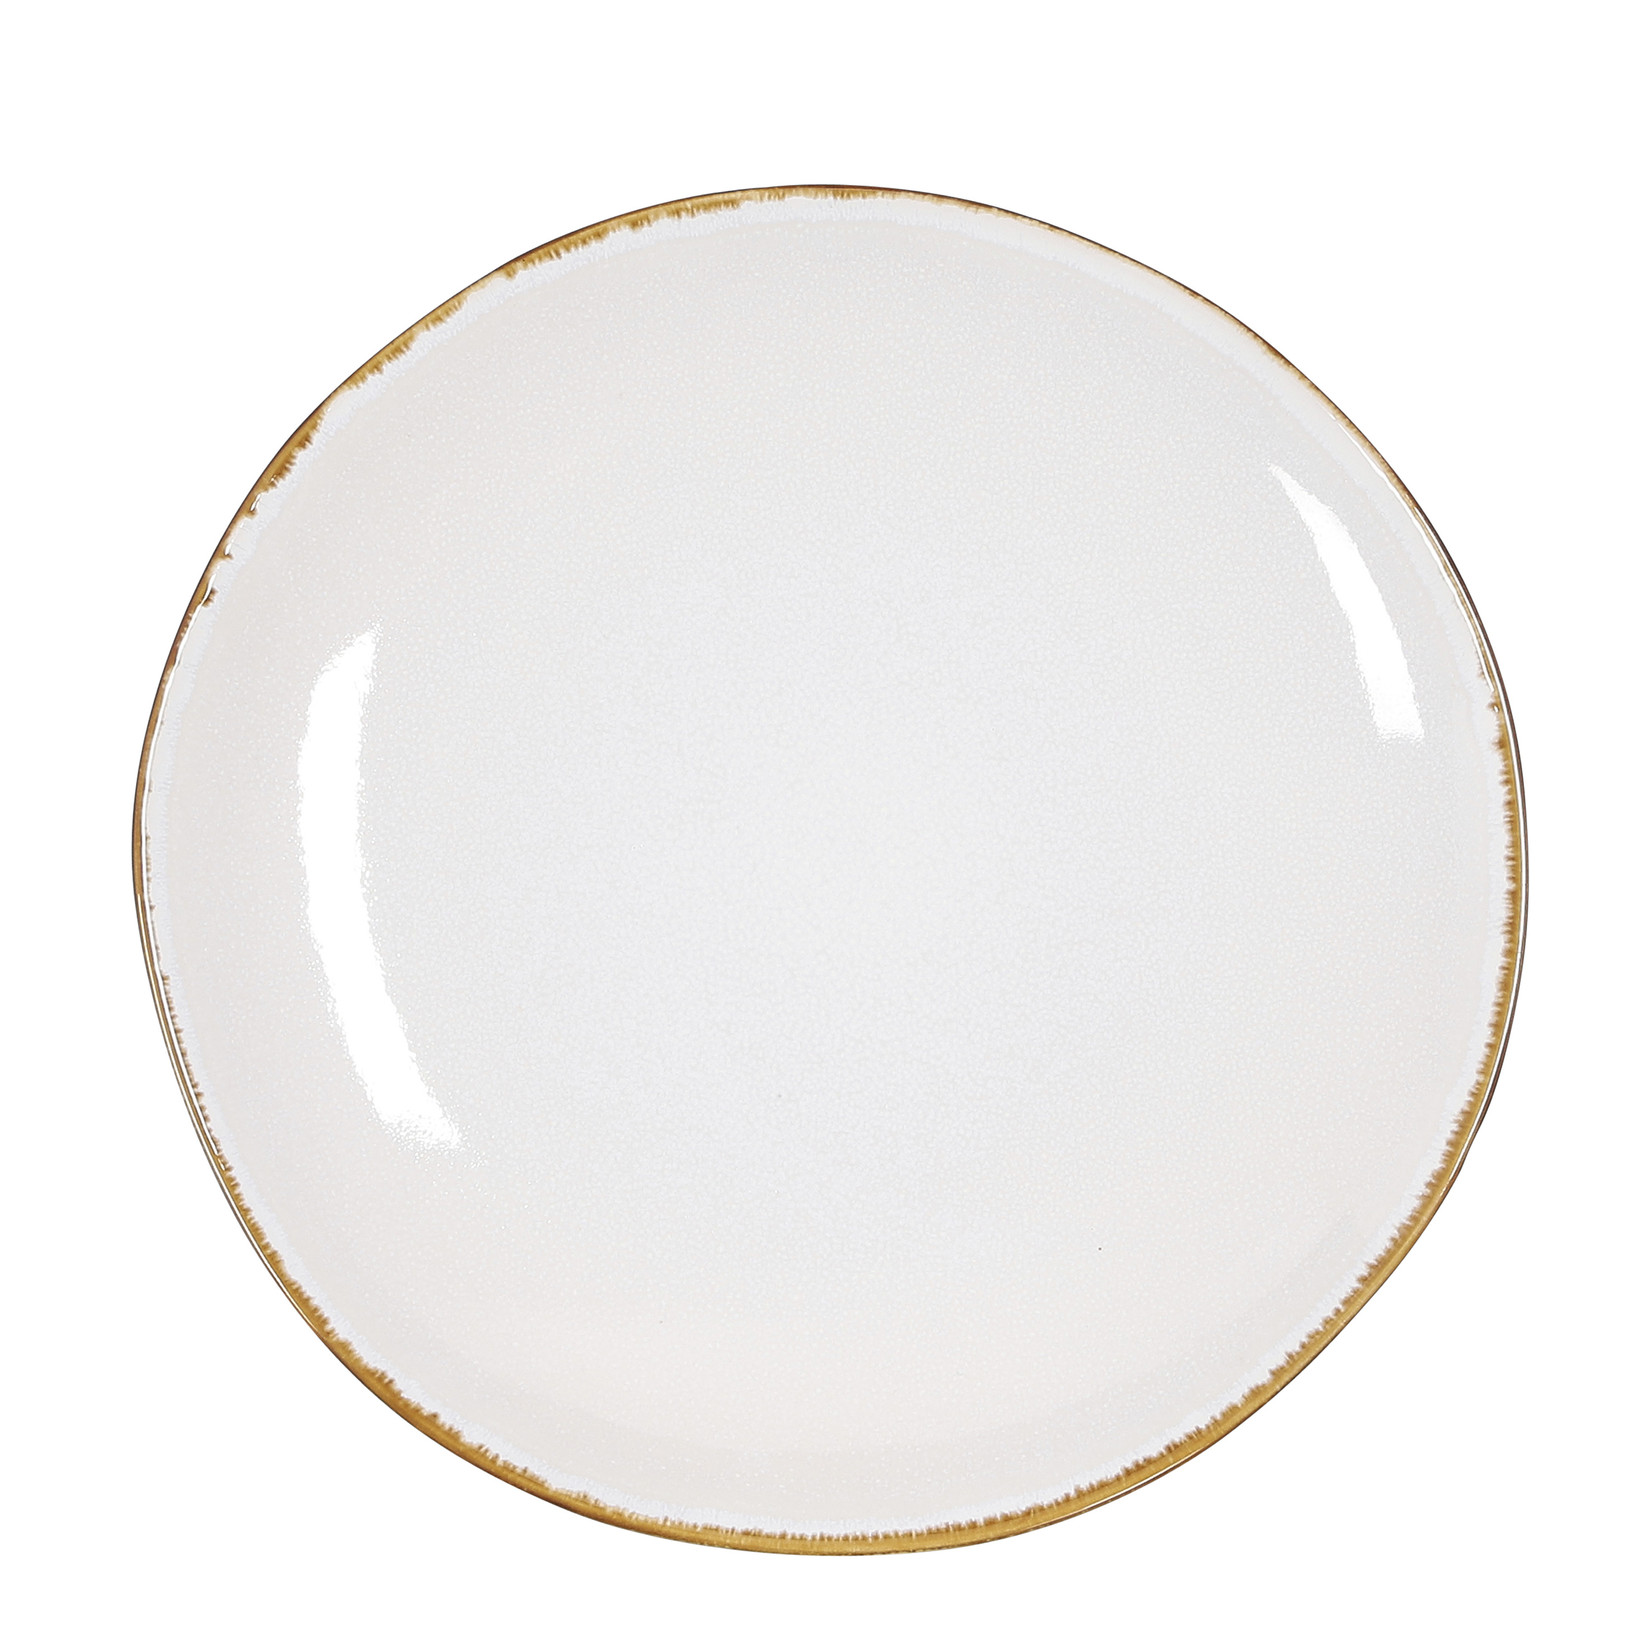 MiCa Tabo dinerbord wit